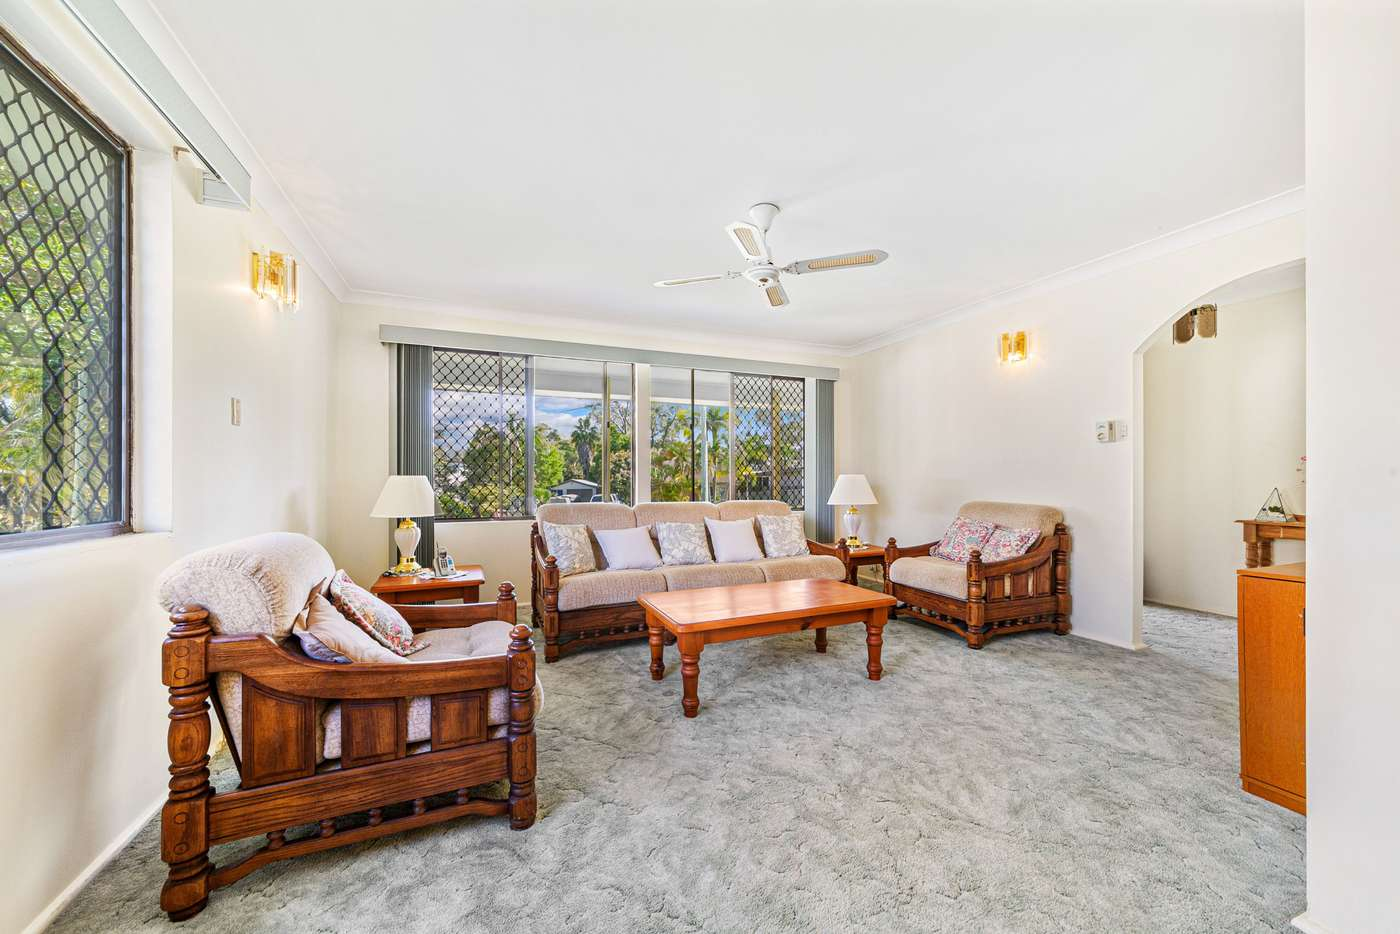 Sixth view of Homely house listing, 1 Murrumbong Road, Summerland Point NSW 2259